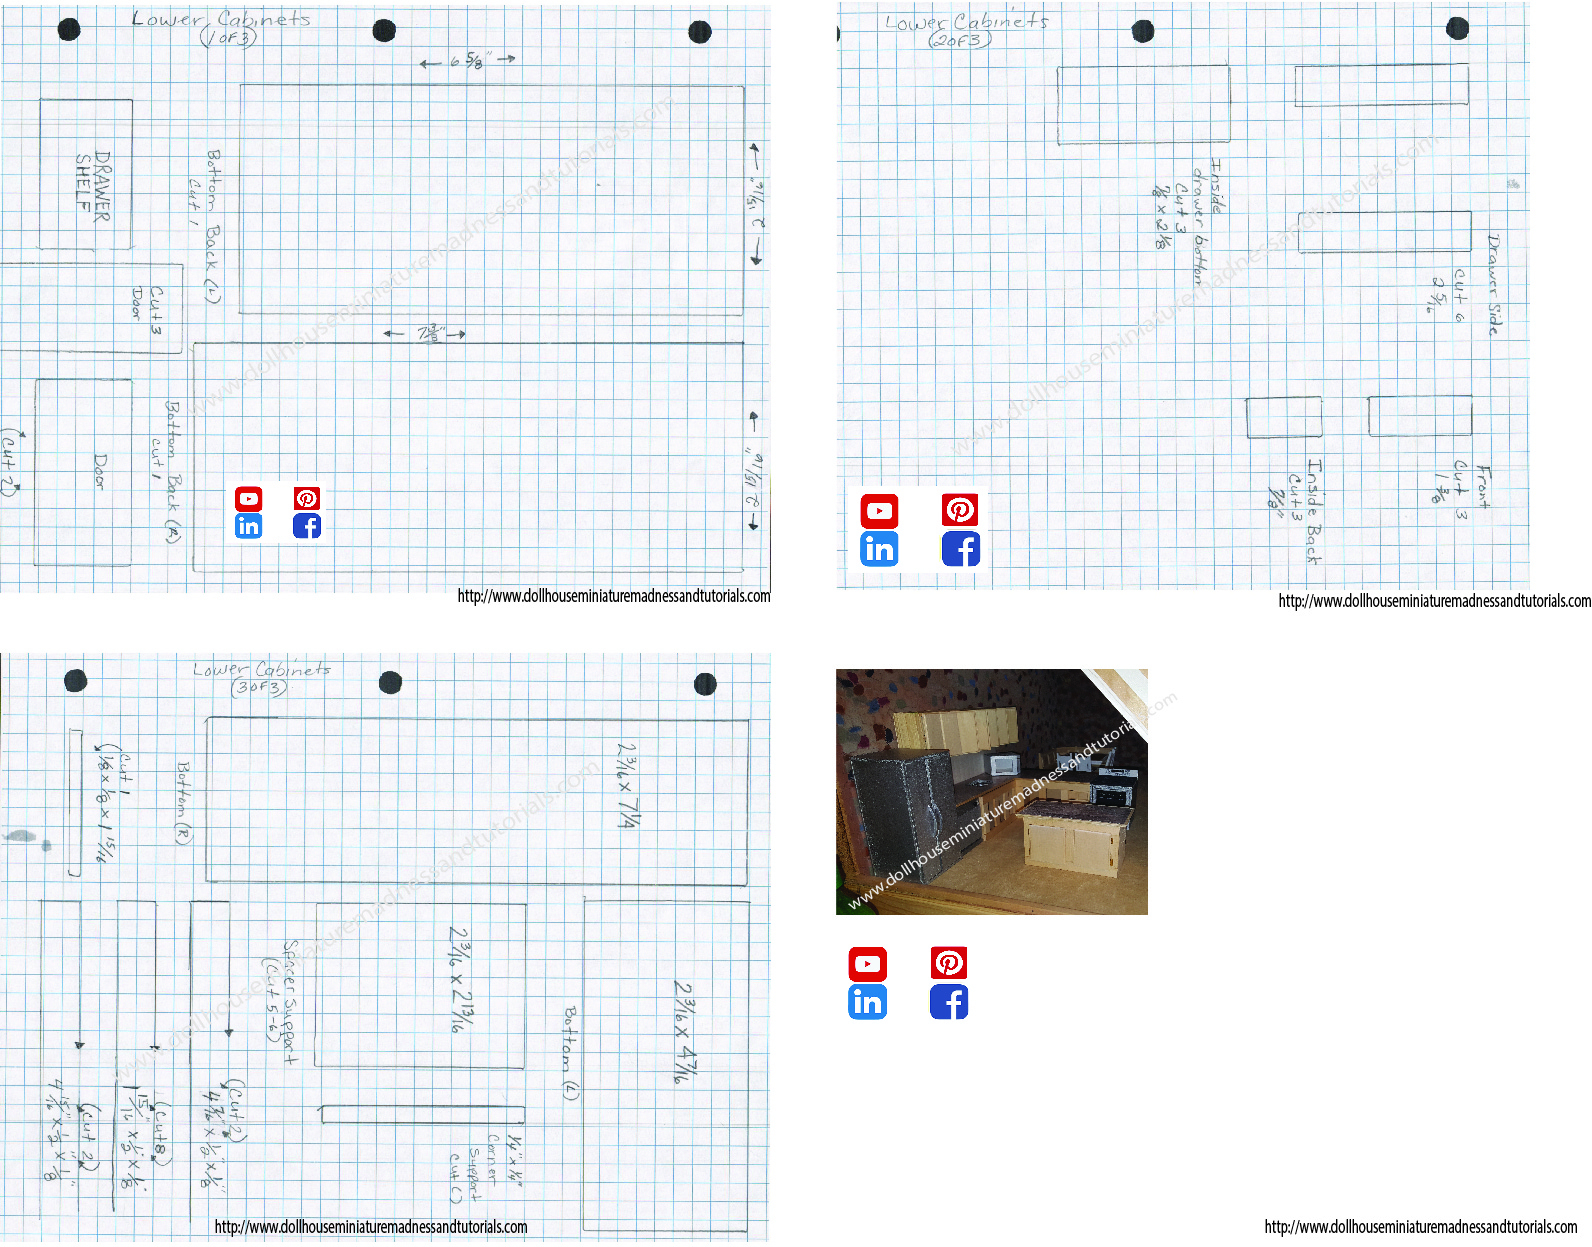 Templates - Dollhouse Miniature Madness And Tutorials - Free Printable Dollhouse Furniture Patterns